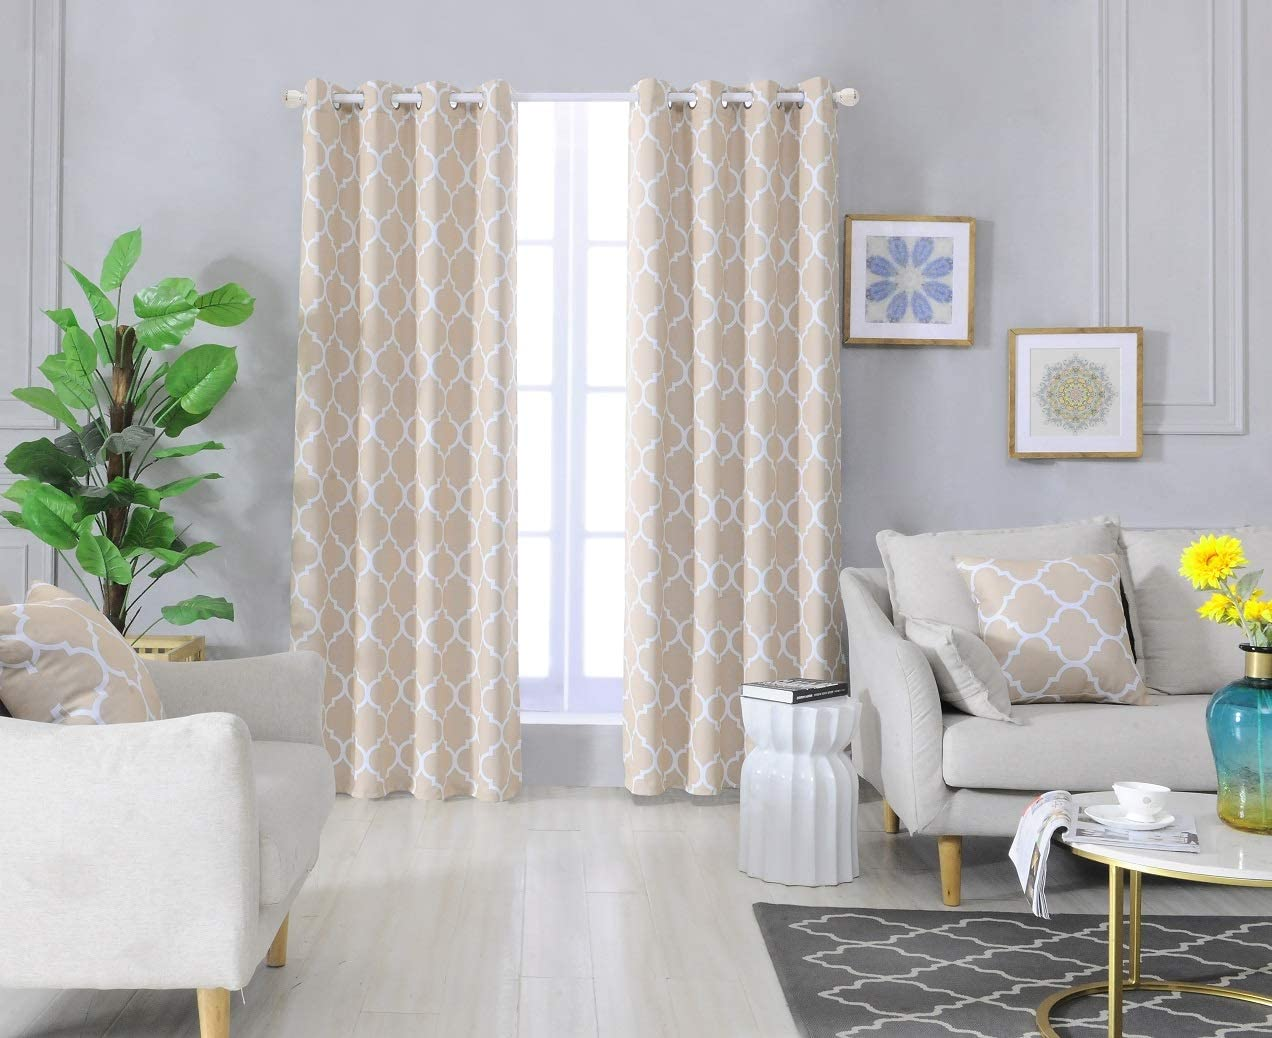 Blackout Curtains Beige with 商い Throw Pillow Set 4 爆売りセール開催中 Th Covers Pieces